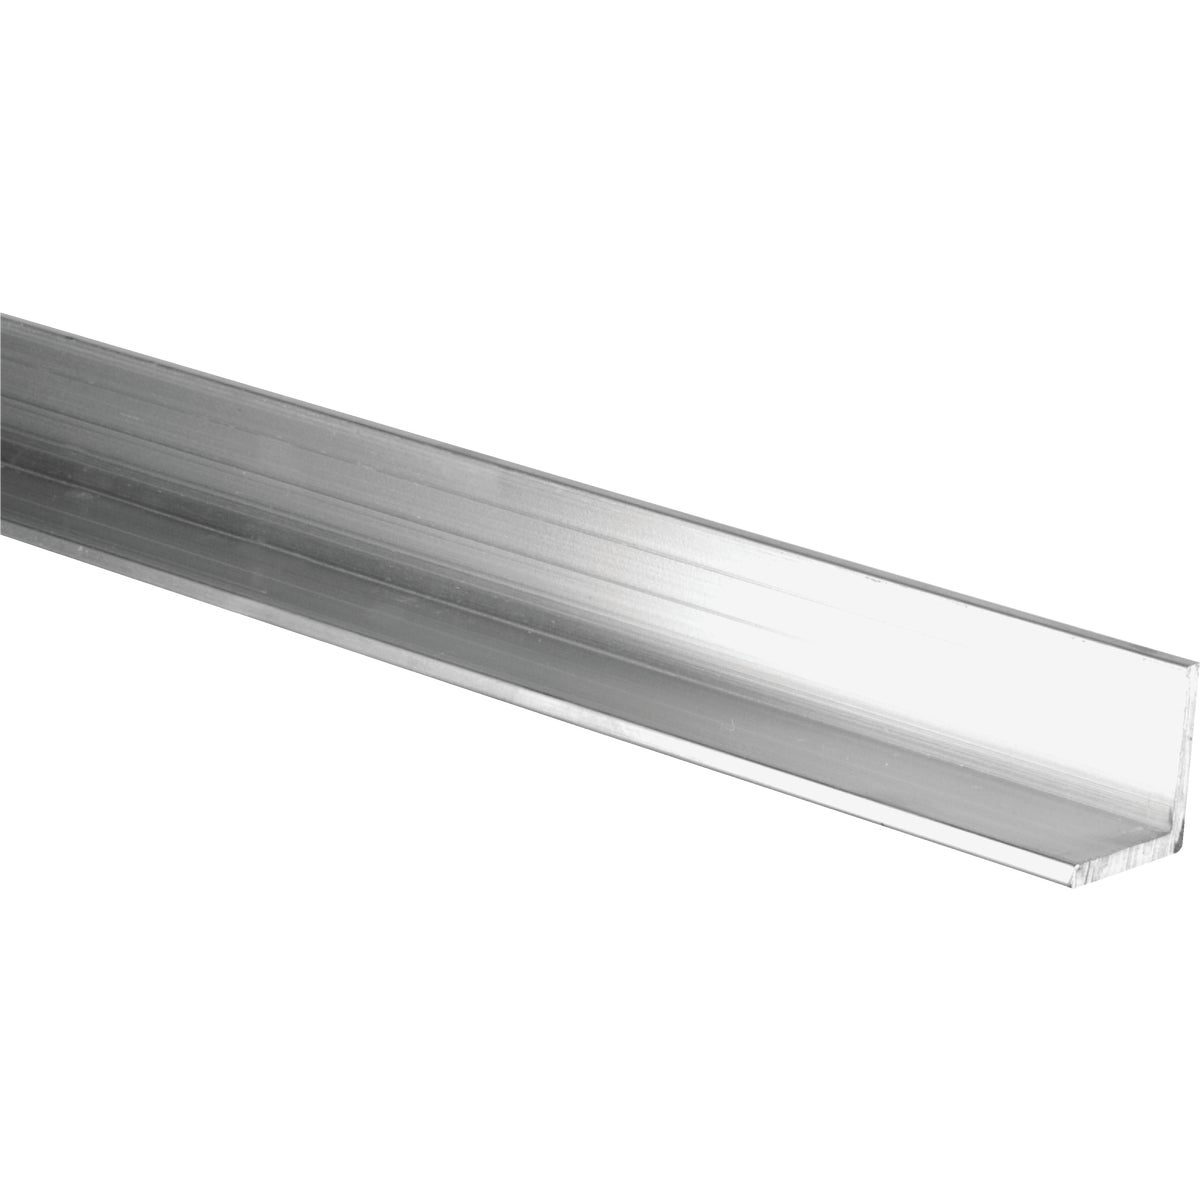 1X1/8X48 MILL ANGLE - N247411 by National Mfg Co